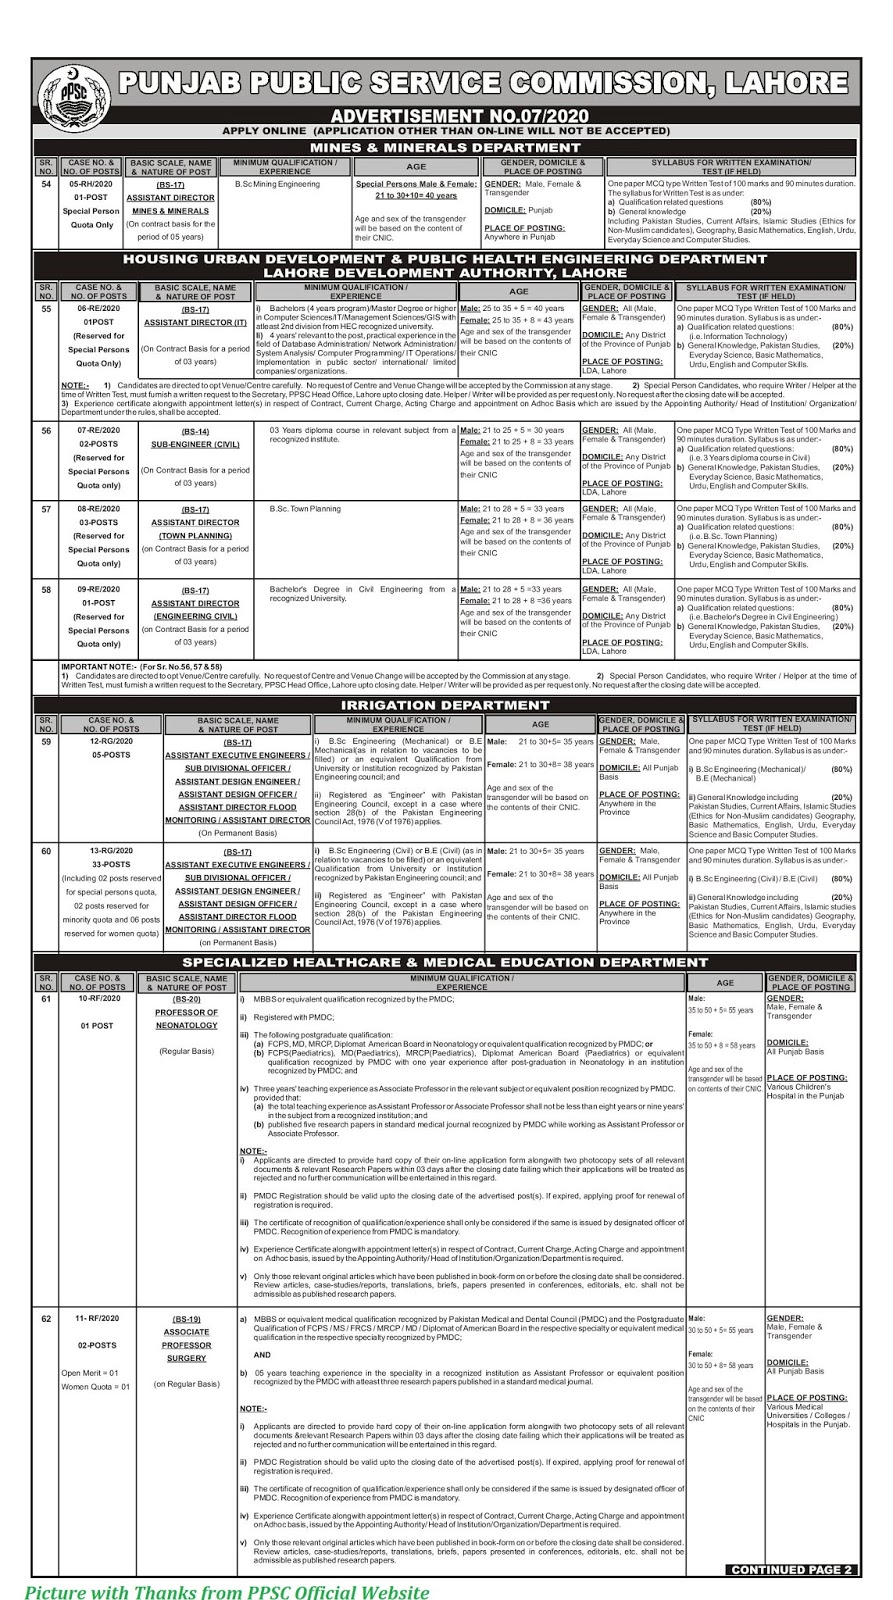 PPSC Jobs 2020 - Latest PPSC Jobs February 2020 Advertisement No. 07-2020